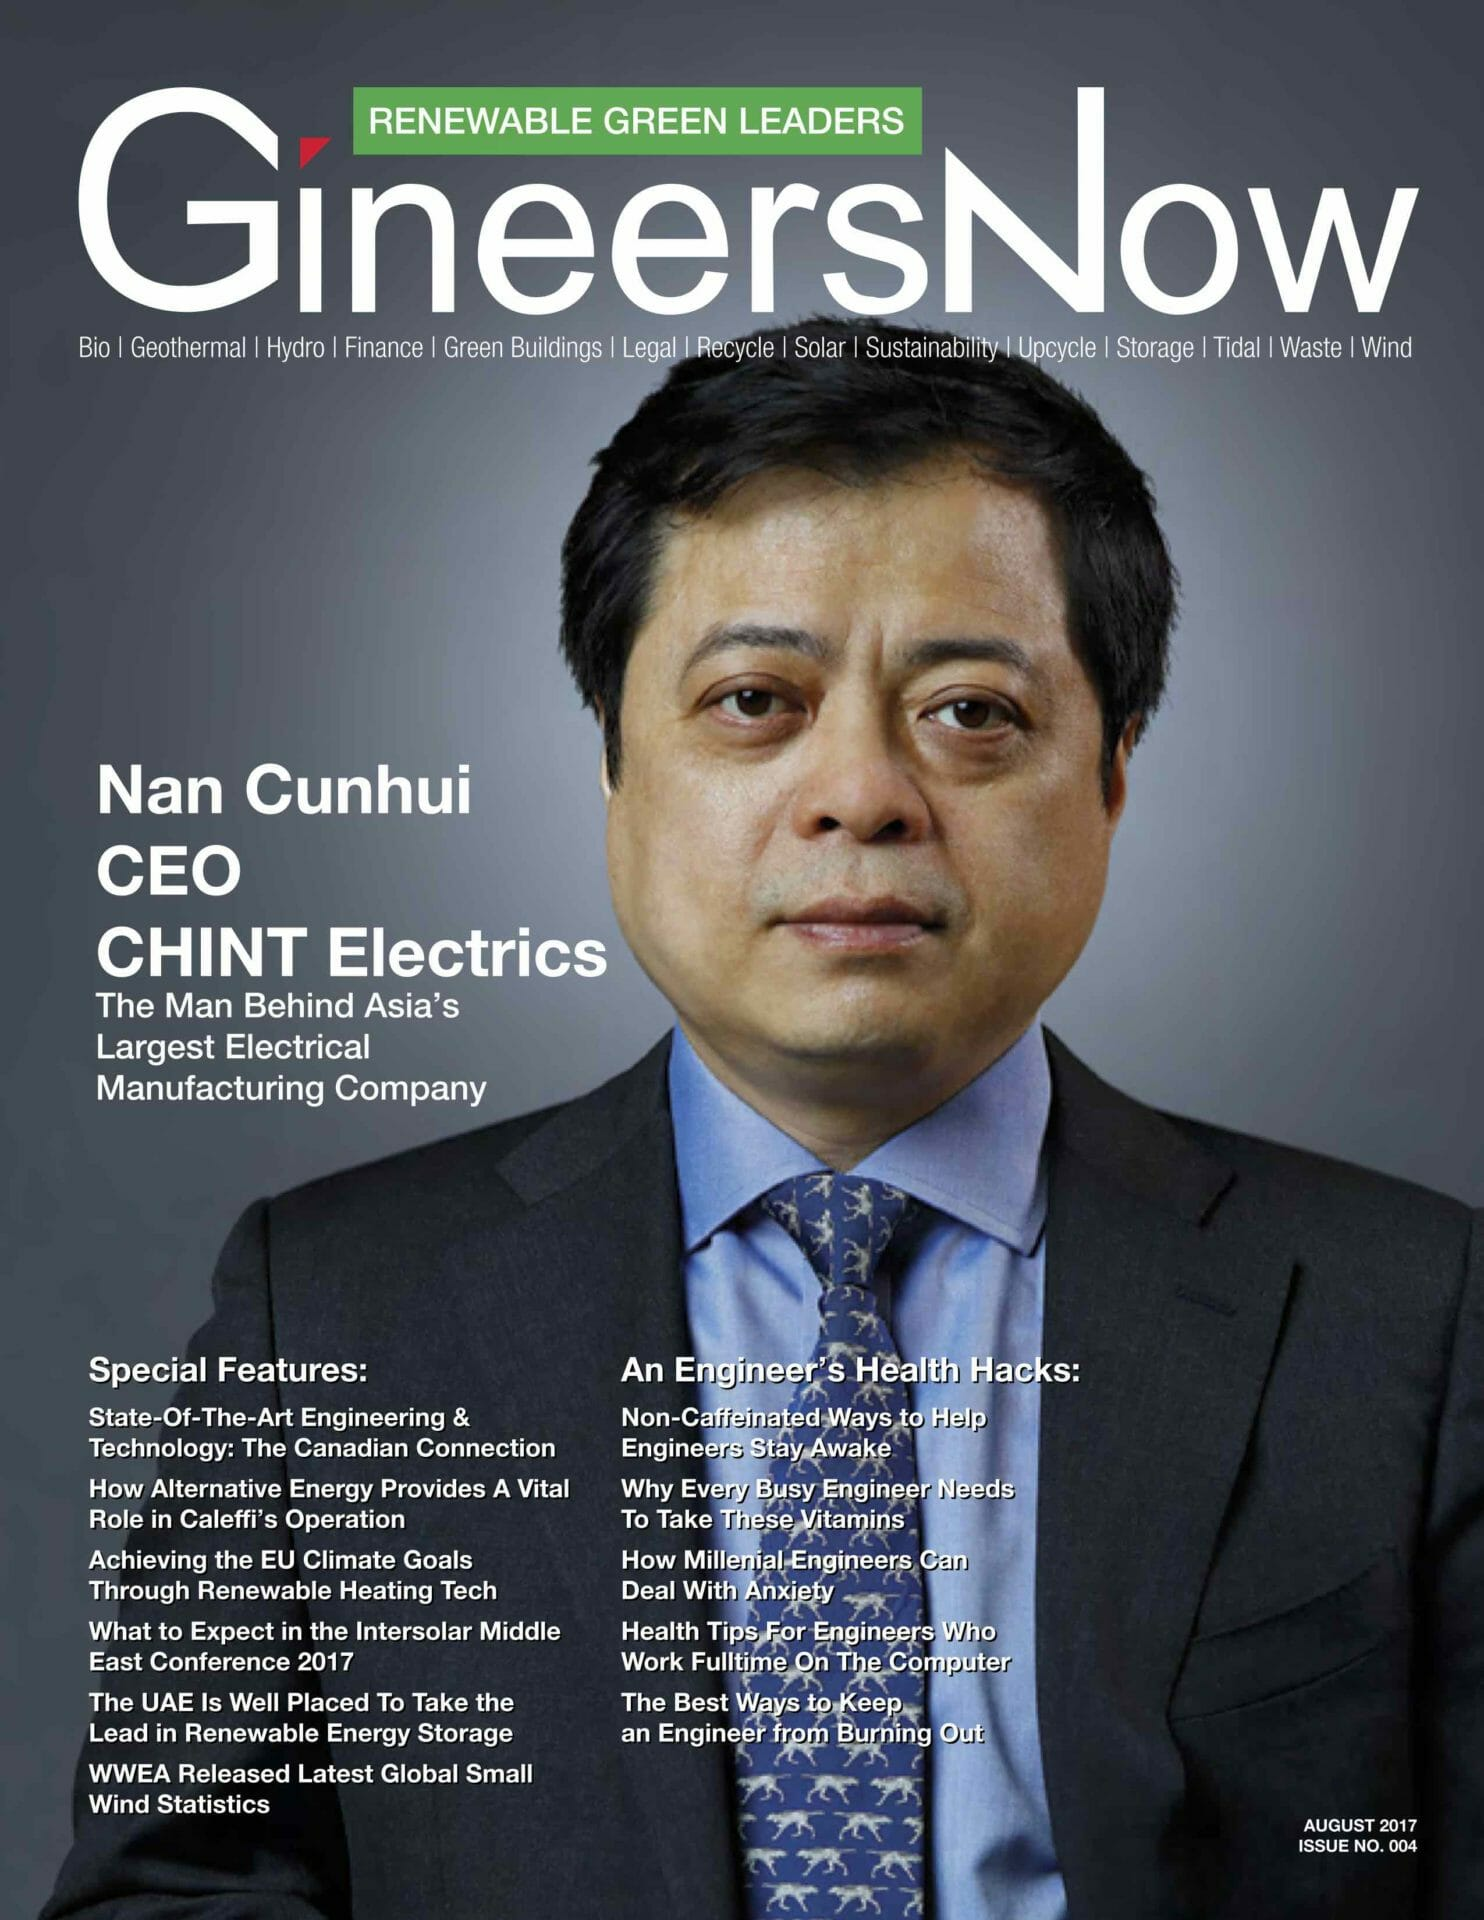 CHINT's Chairman Nan Cunhui: A Dream Chaser On Today's World Economic Stage